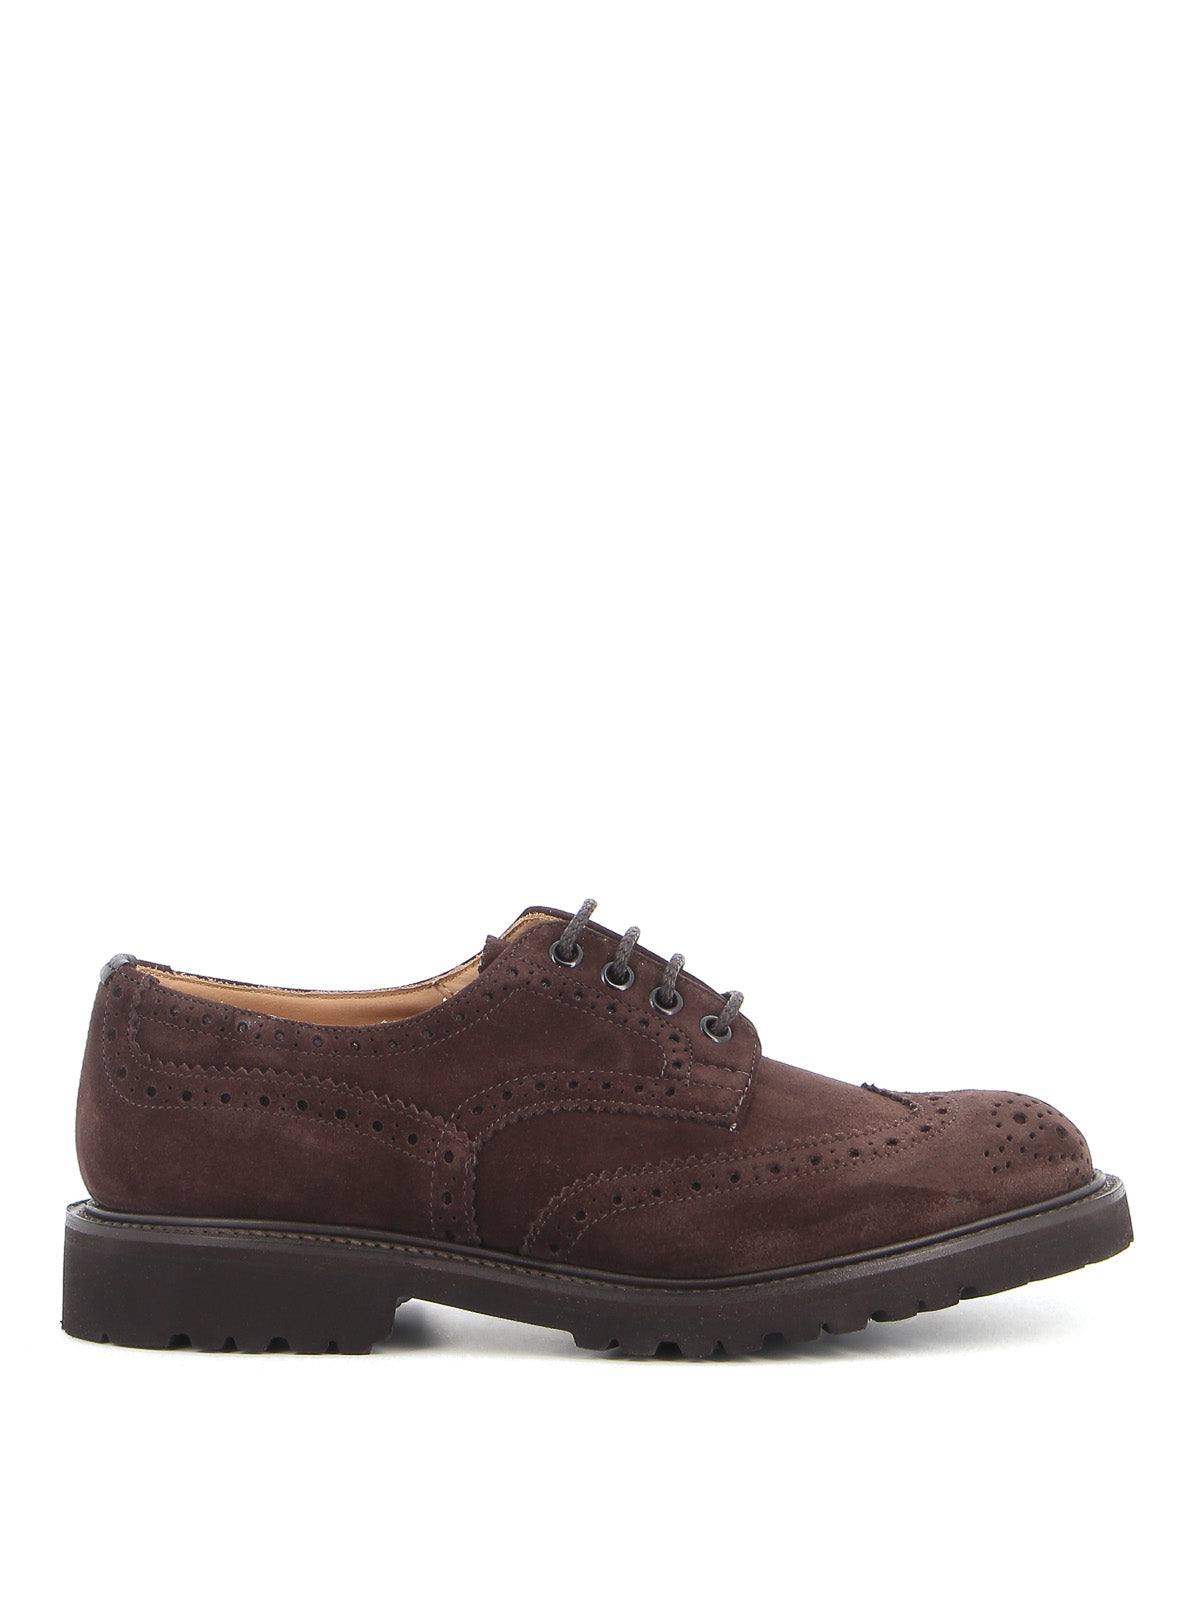 Tricker's TRICKER'S BOURTON COUNTRY SHOES